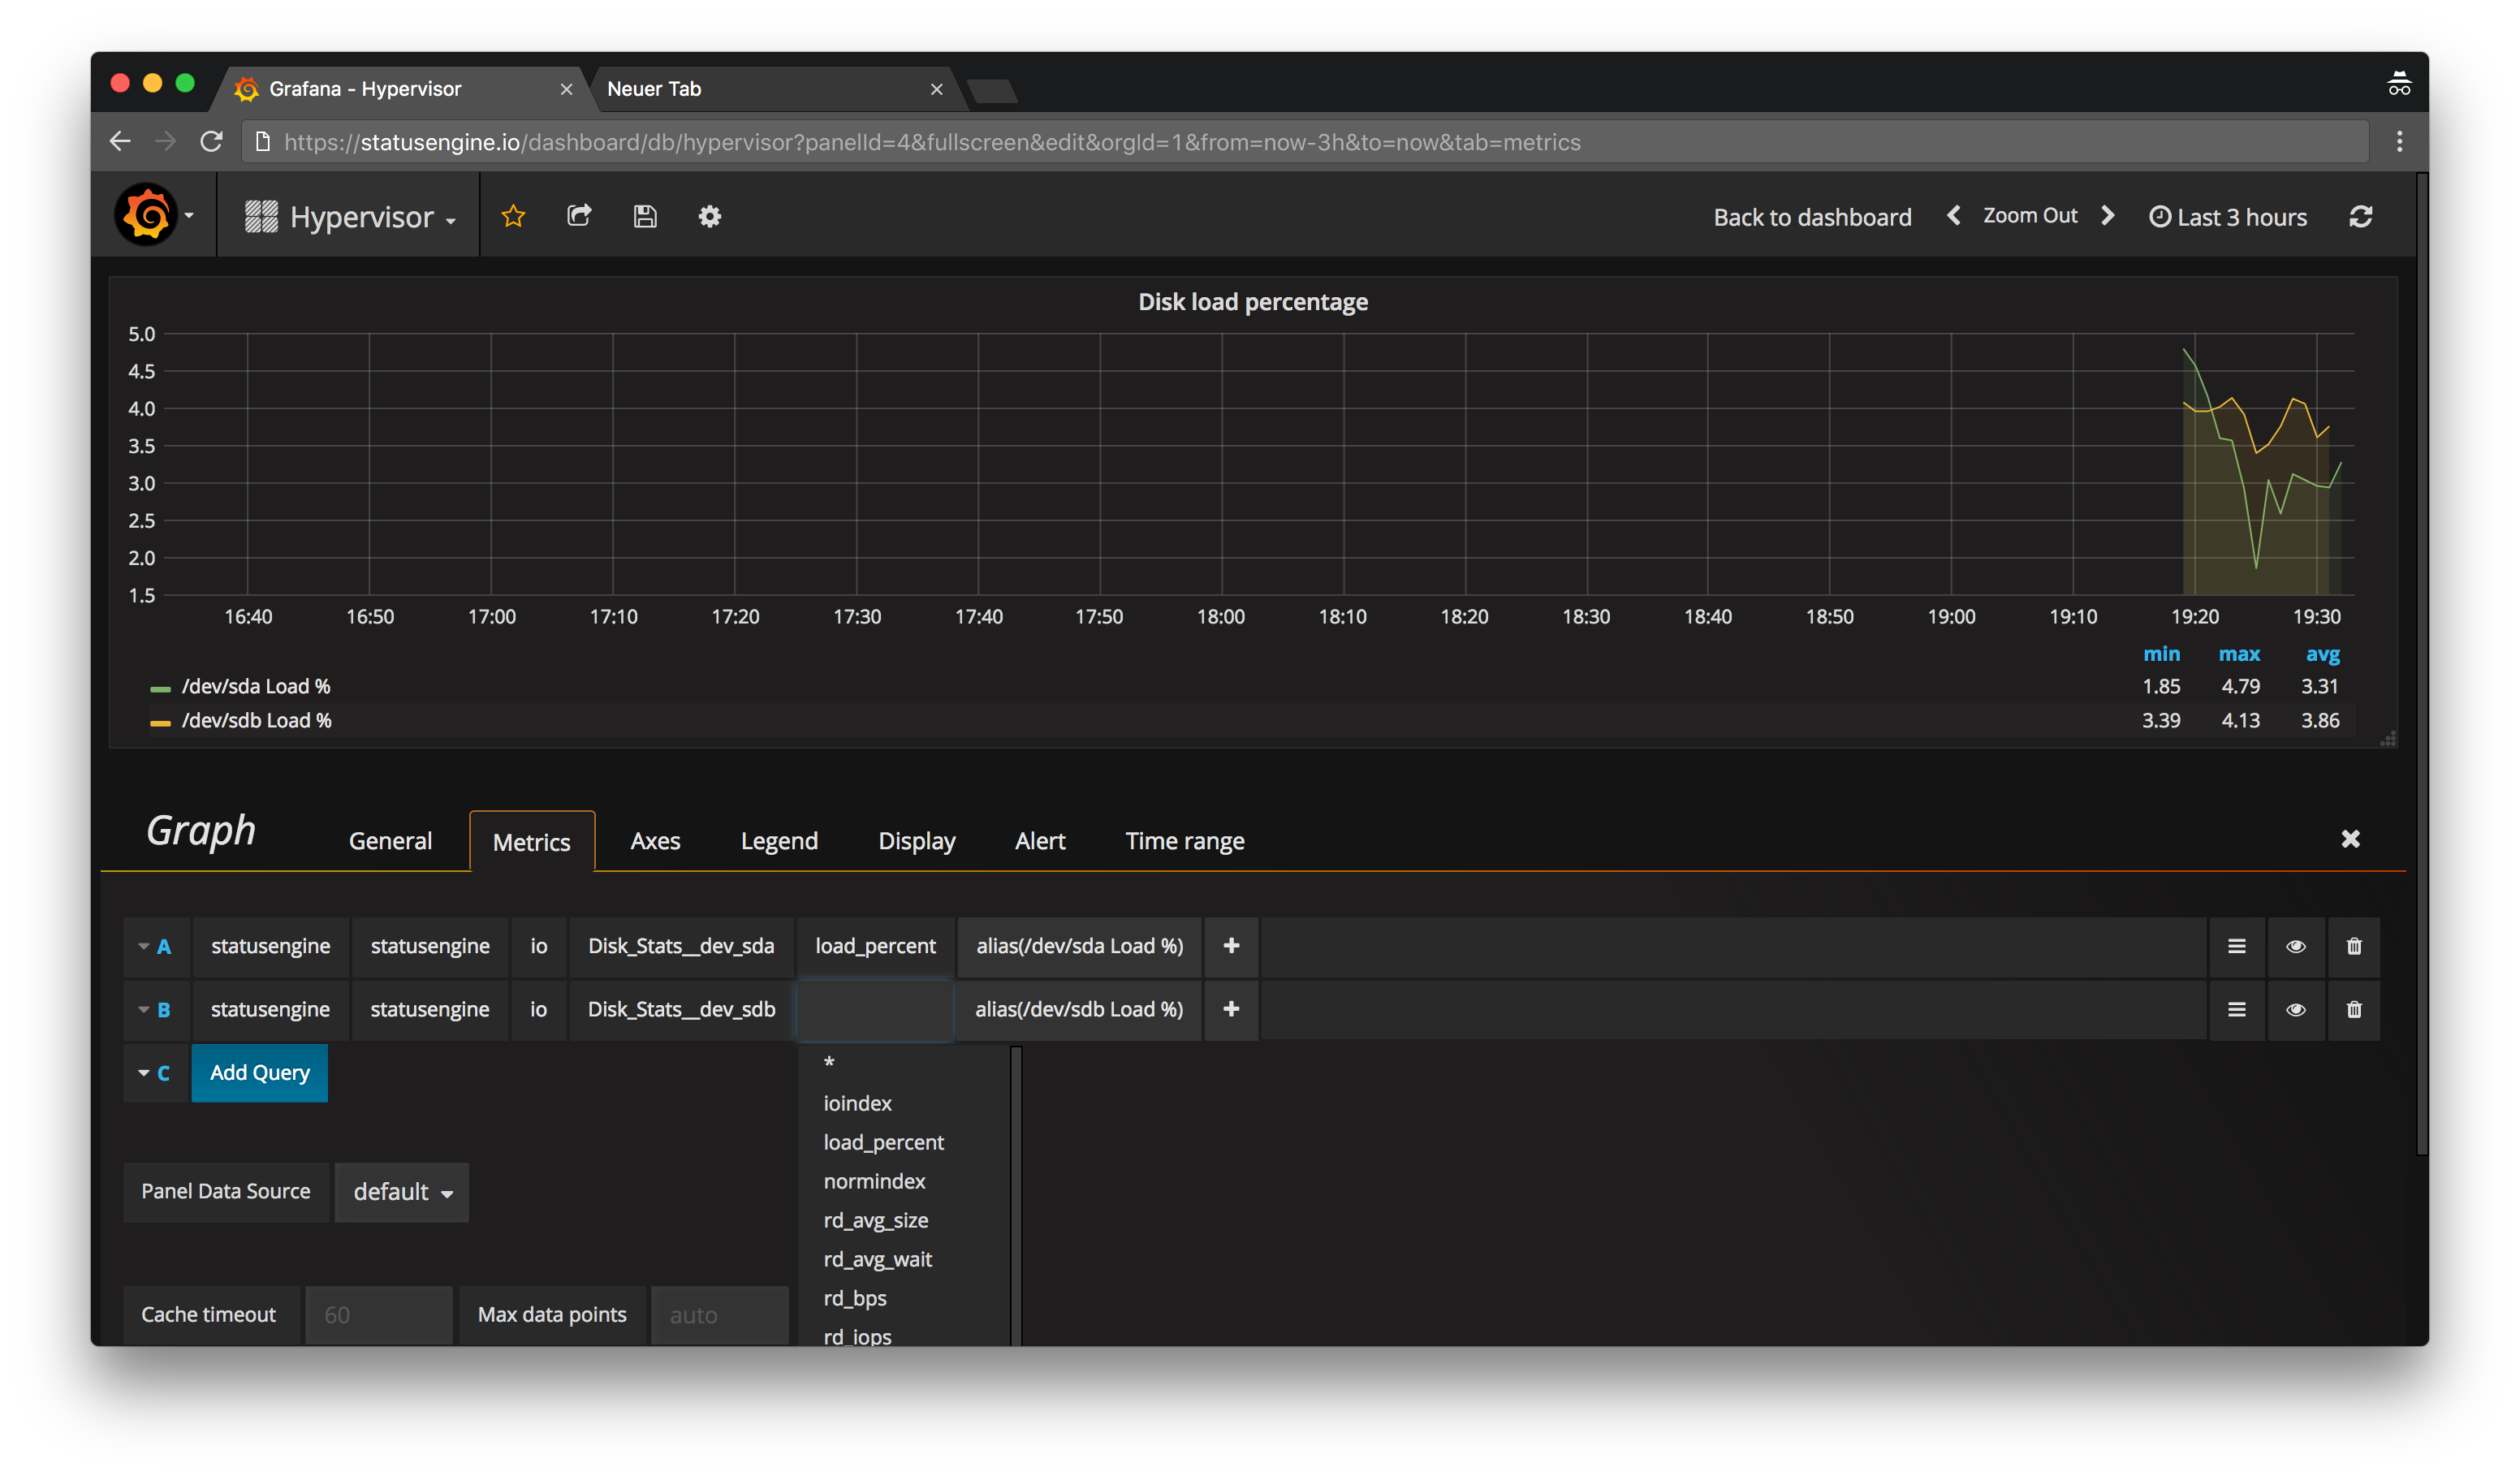 Create the first Graph in Grafana